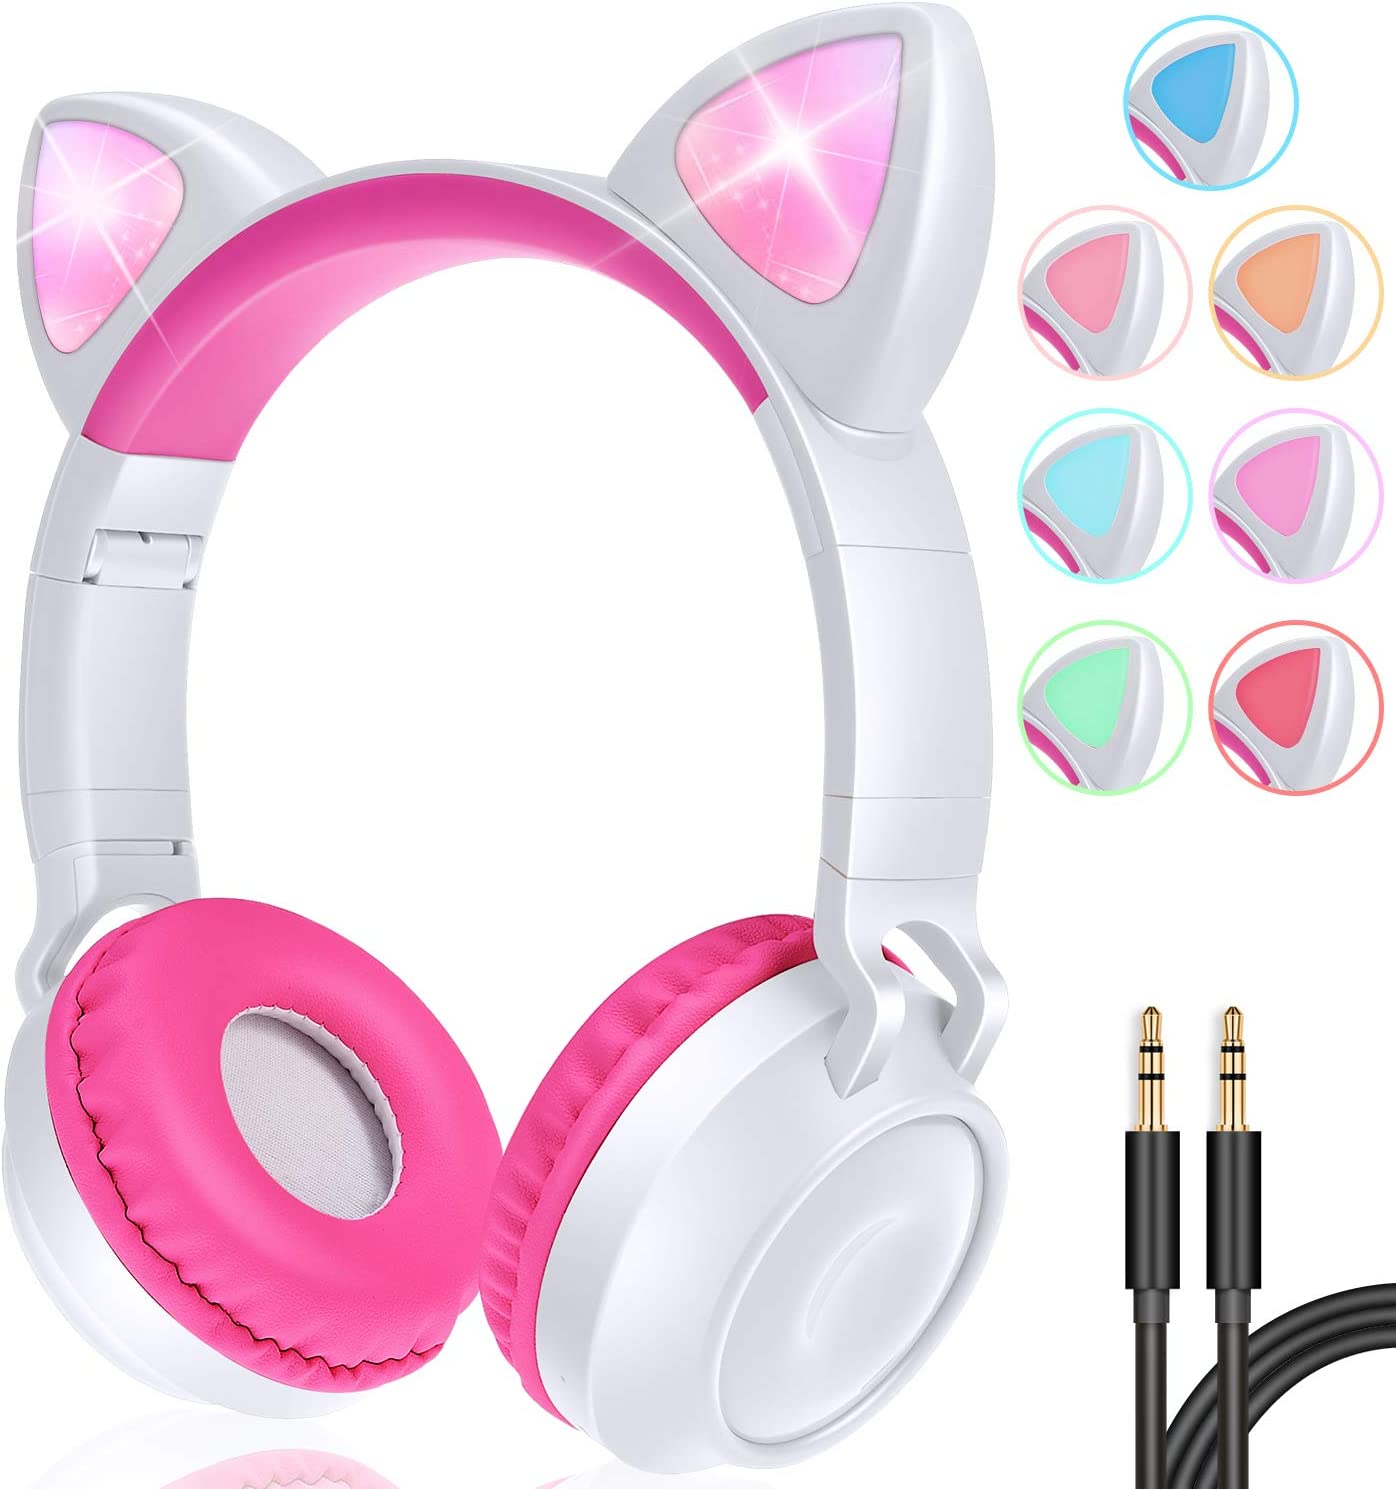 look this one headphone this is one of the best headphone for the kids and toddles who are going to school for this is look like cat